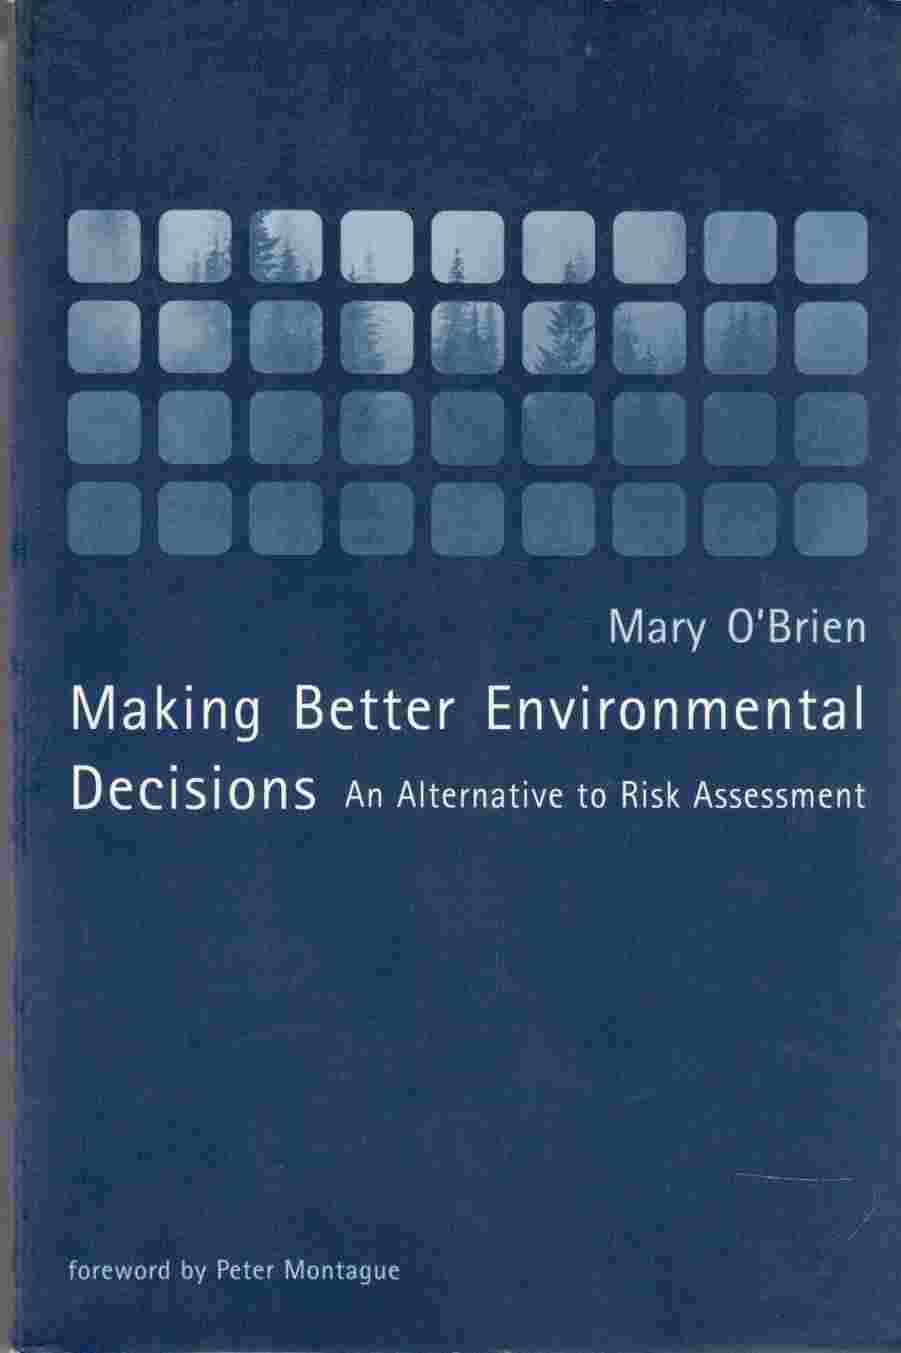 Image for Making Better Environmental Decisions An Alternative to Risk Assessment